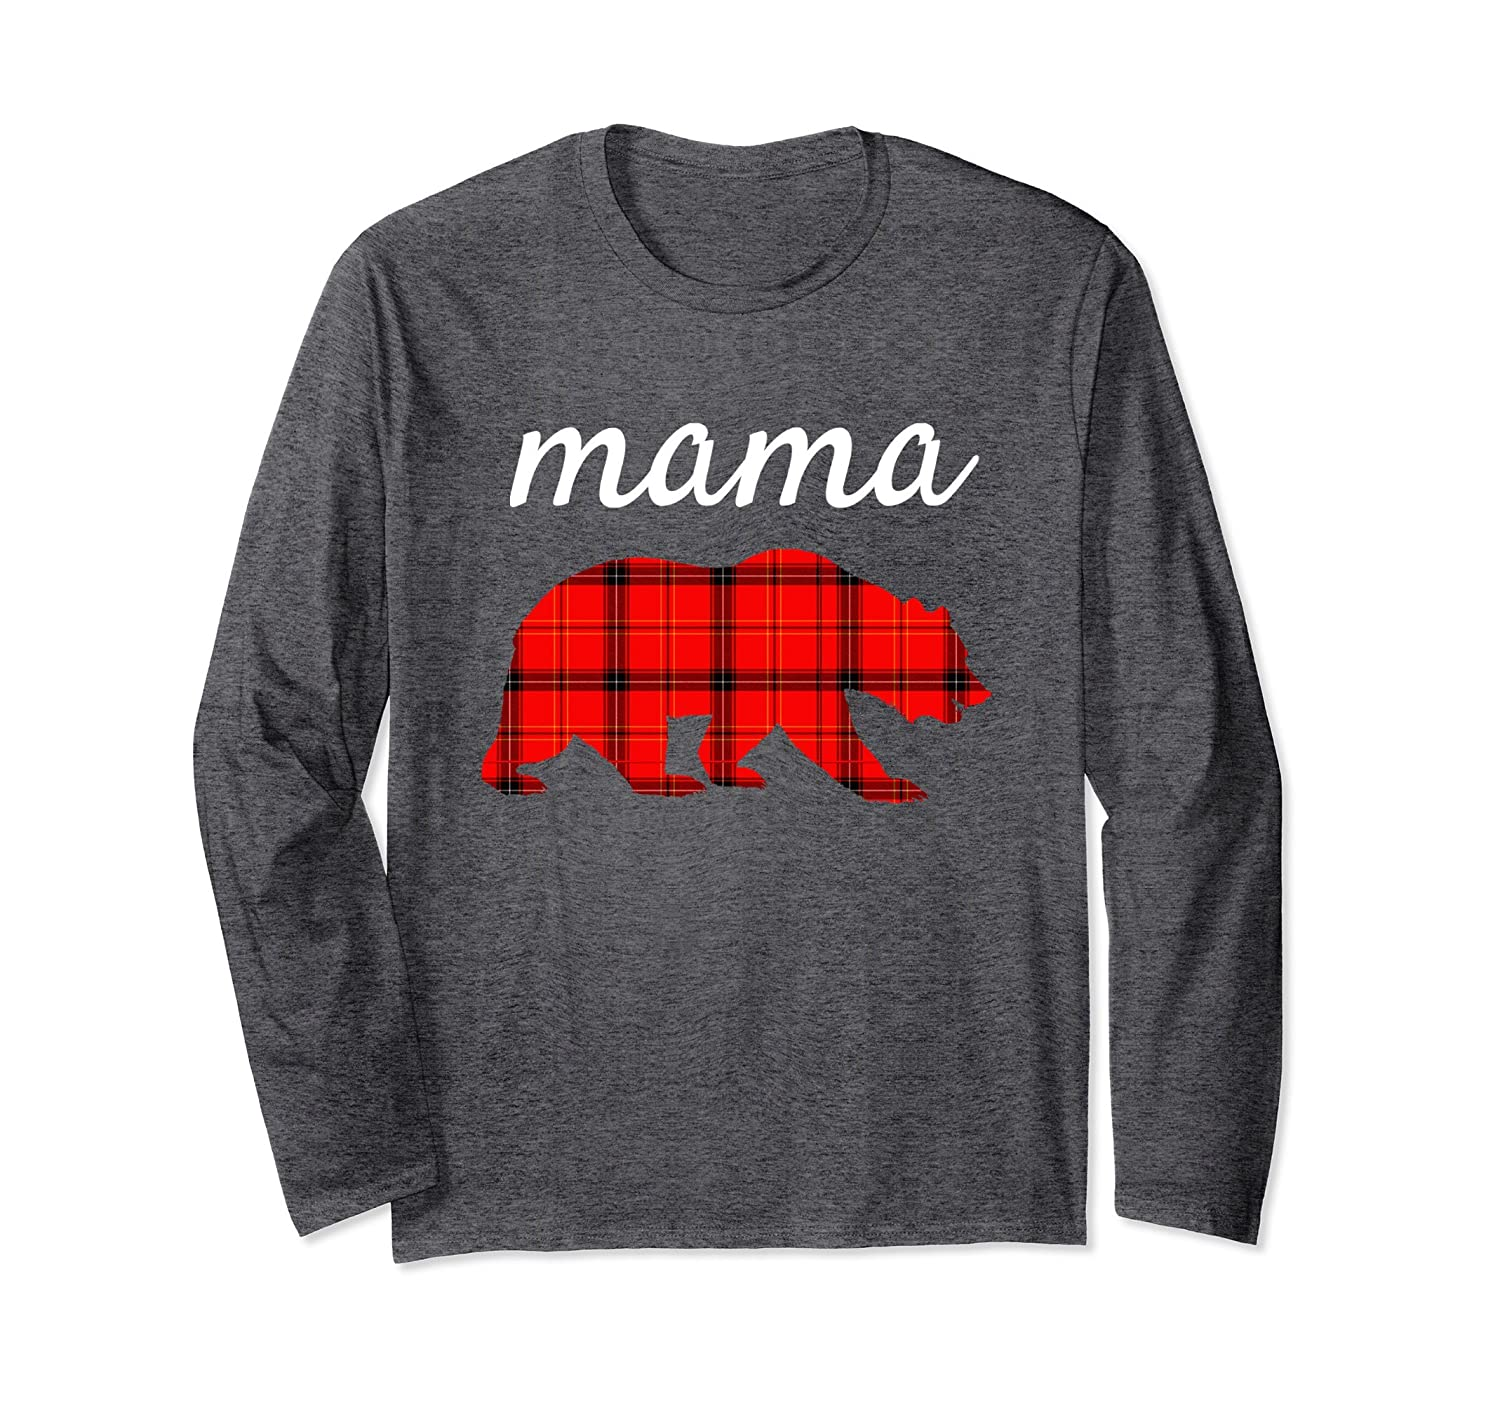 0517b957 Mama Bear Papa Bear Shirt Mama Bear Plaid Long Sleeve Shirt-ah my ...